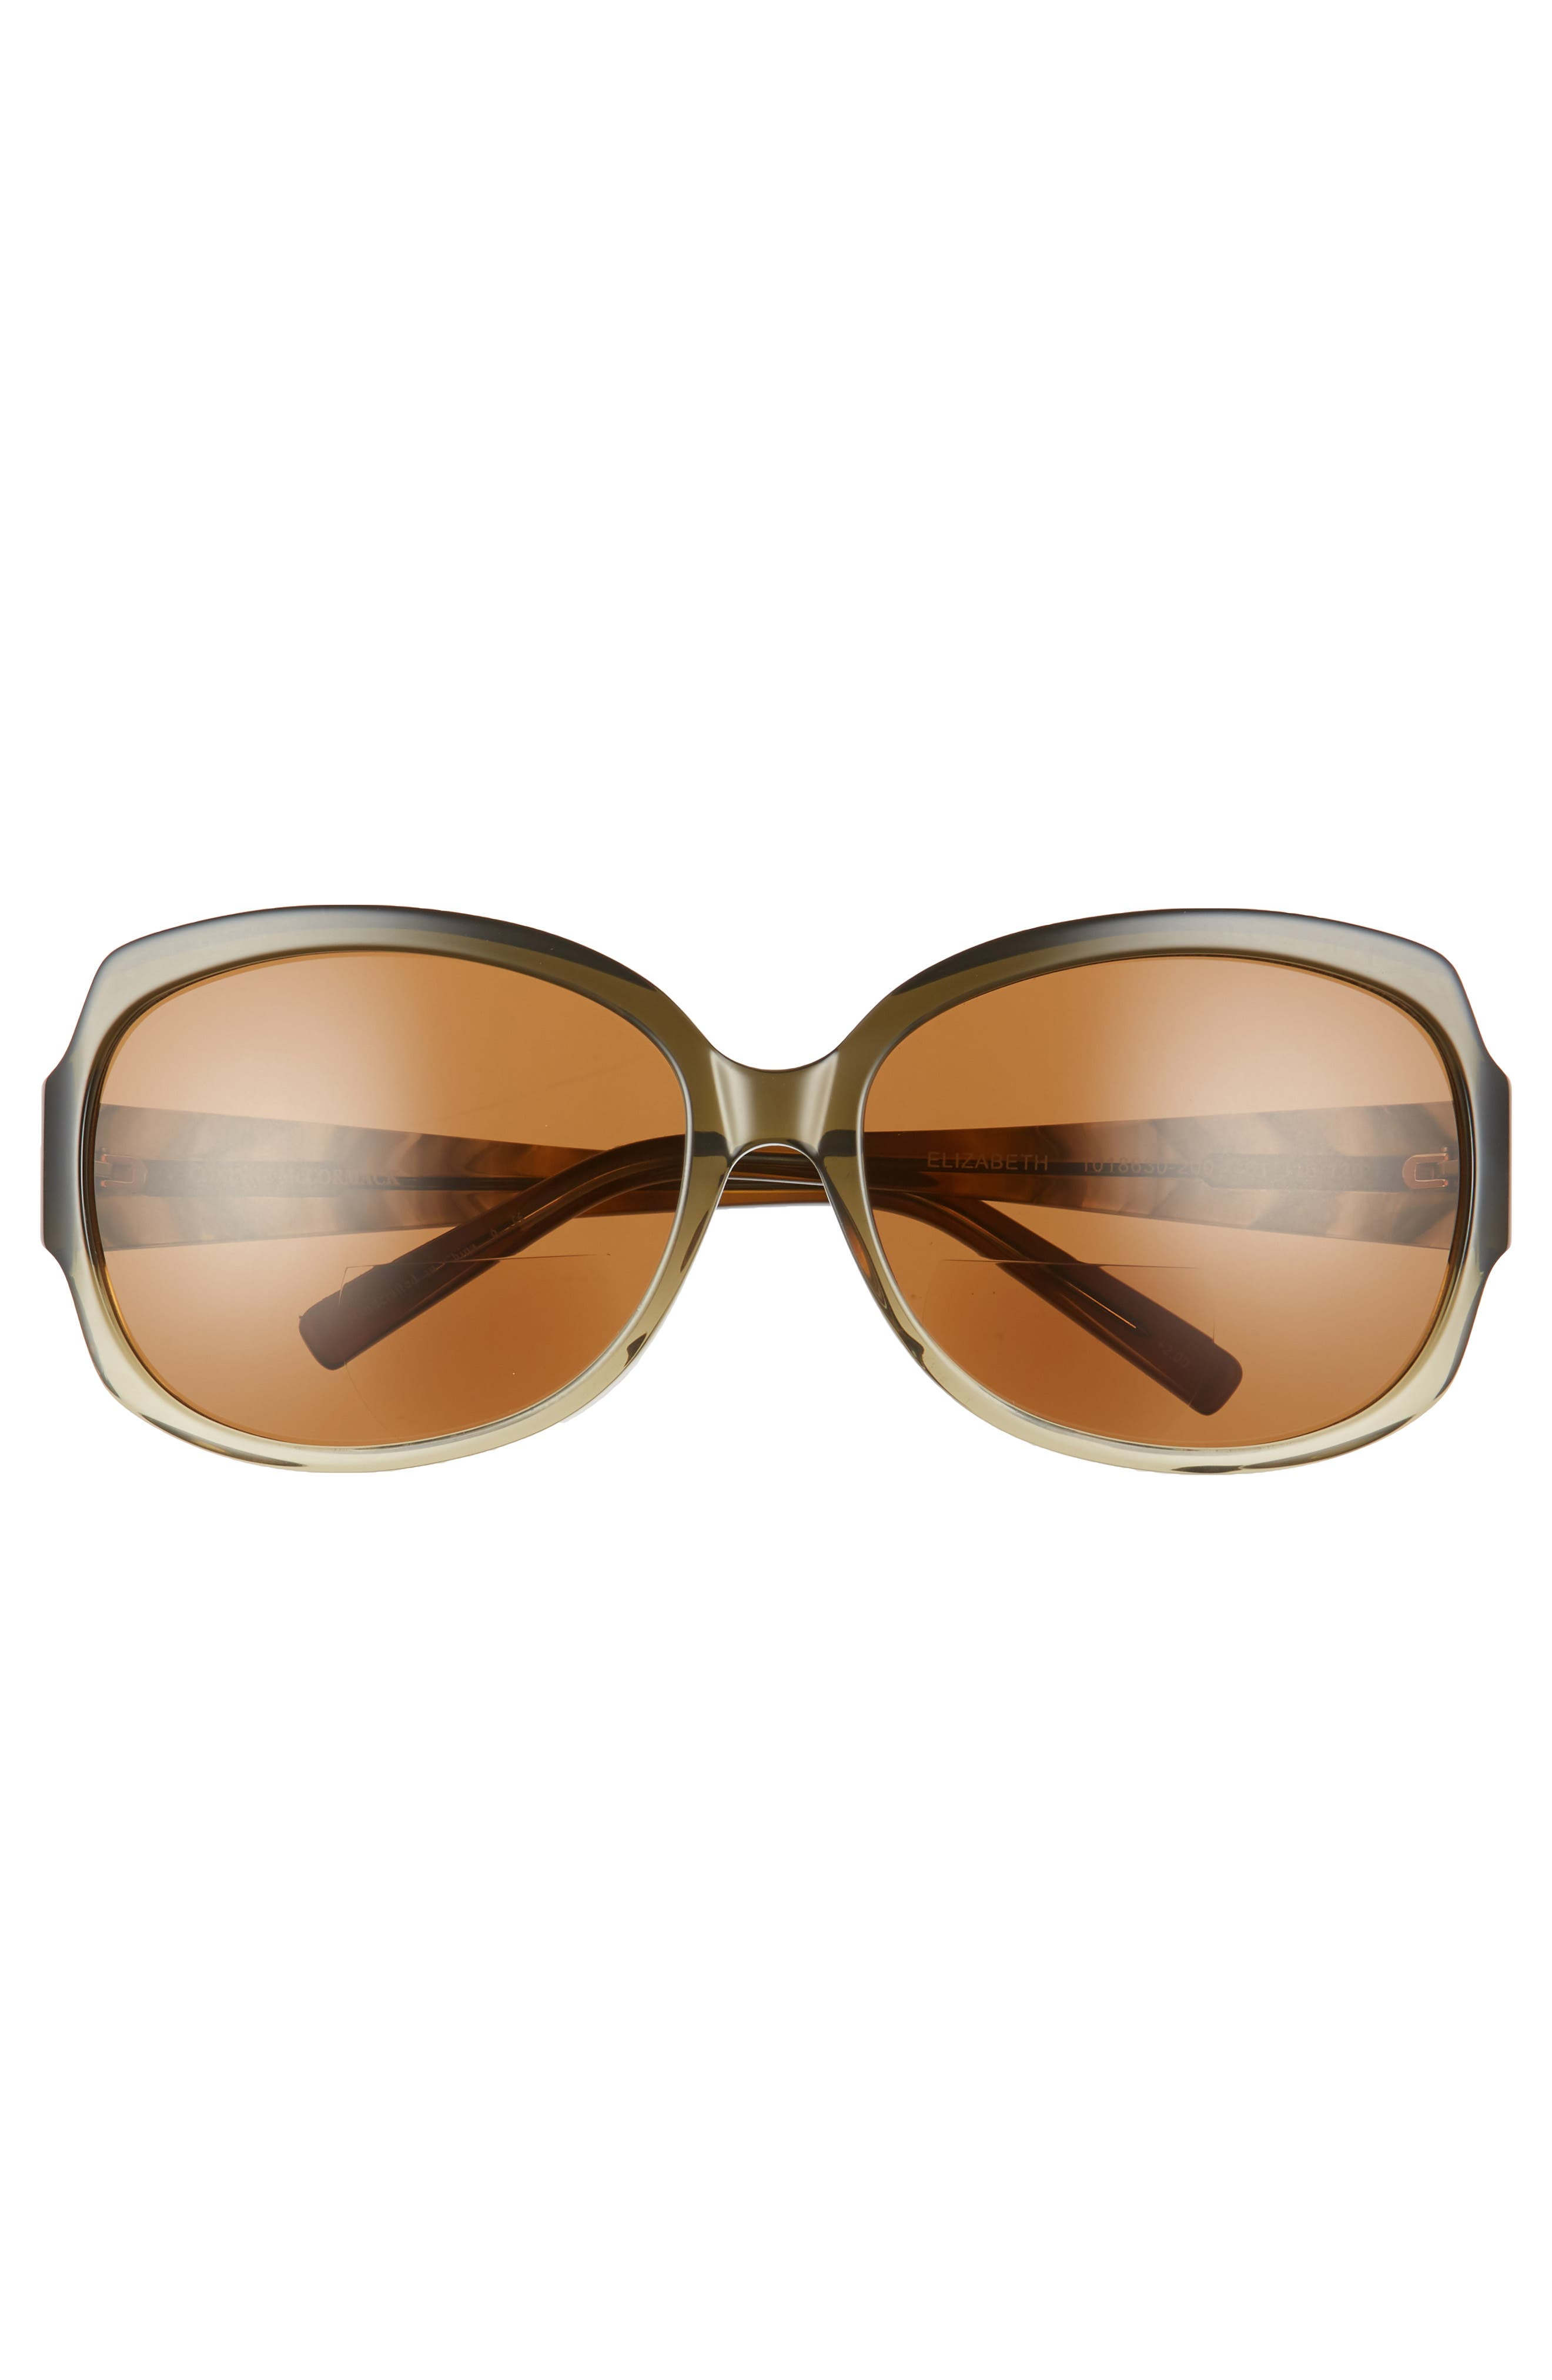 'Elizabeth' 61mm Reading Sunglasses,                             Alternate thumbnail 3, color,                             300